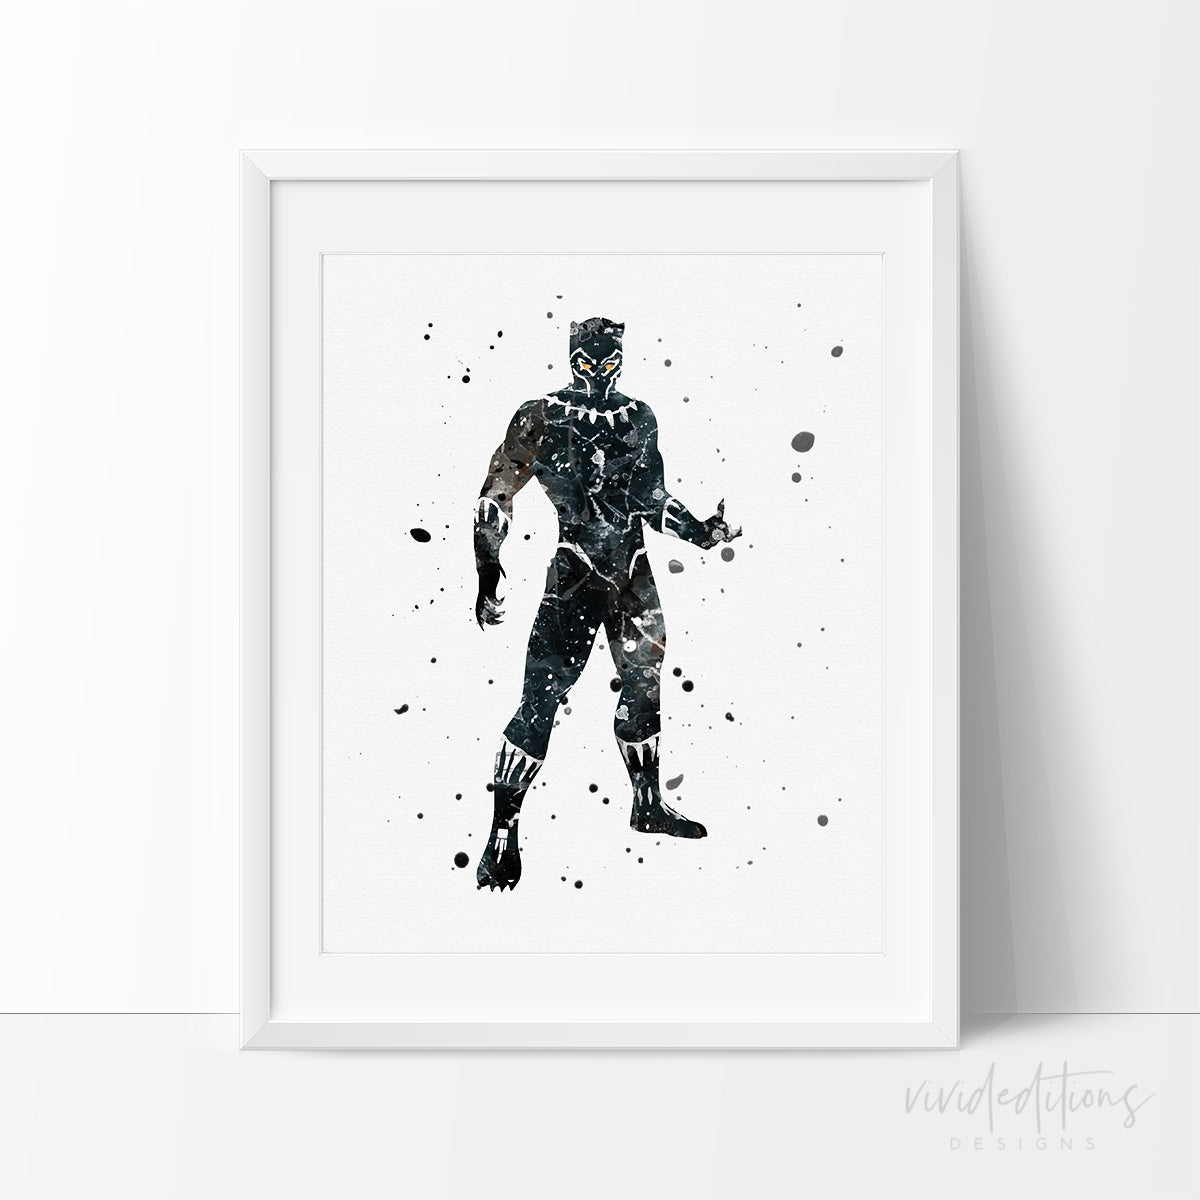 Black Panther Watercolor Art Print Poster Art Print - VIVIDEDITIONS